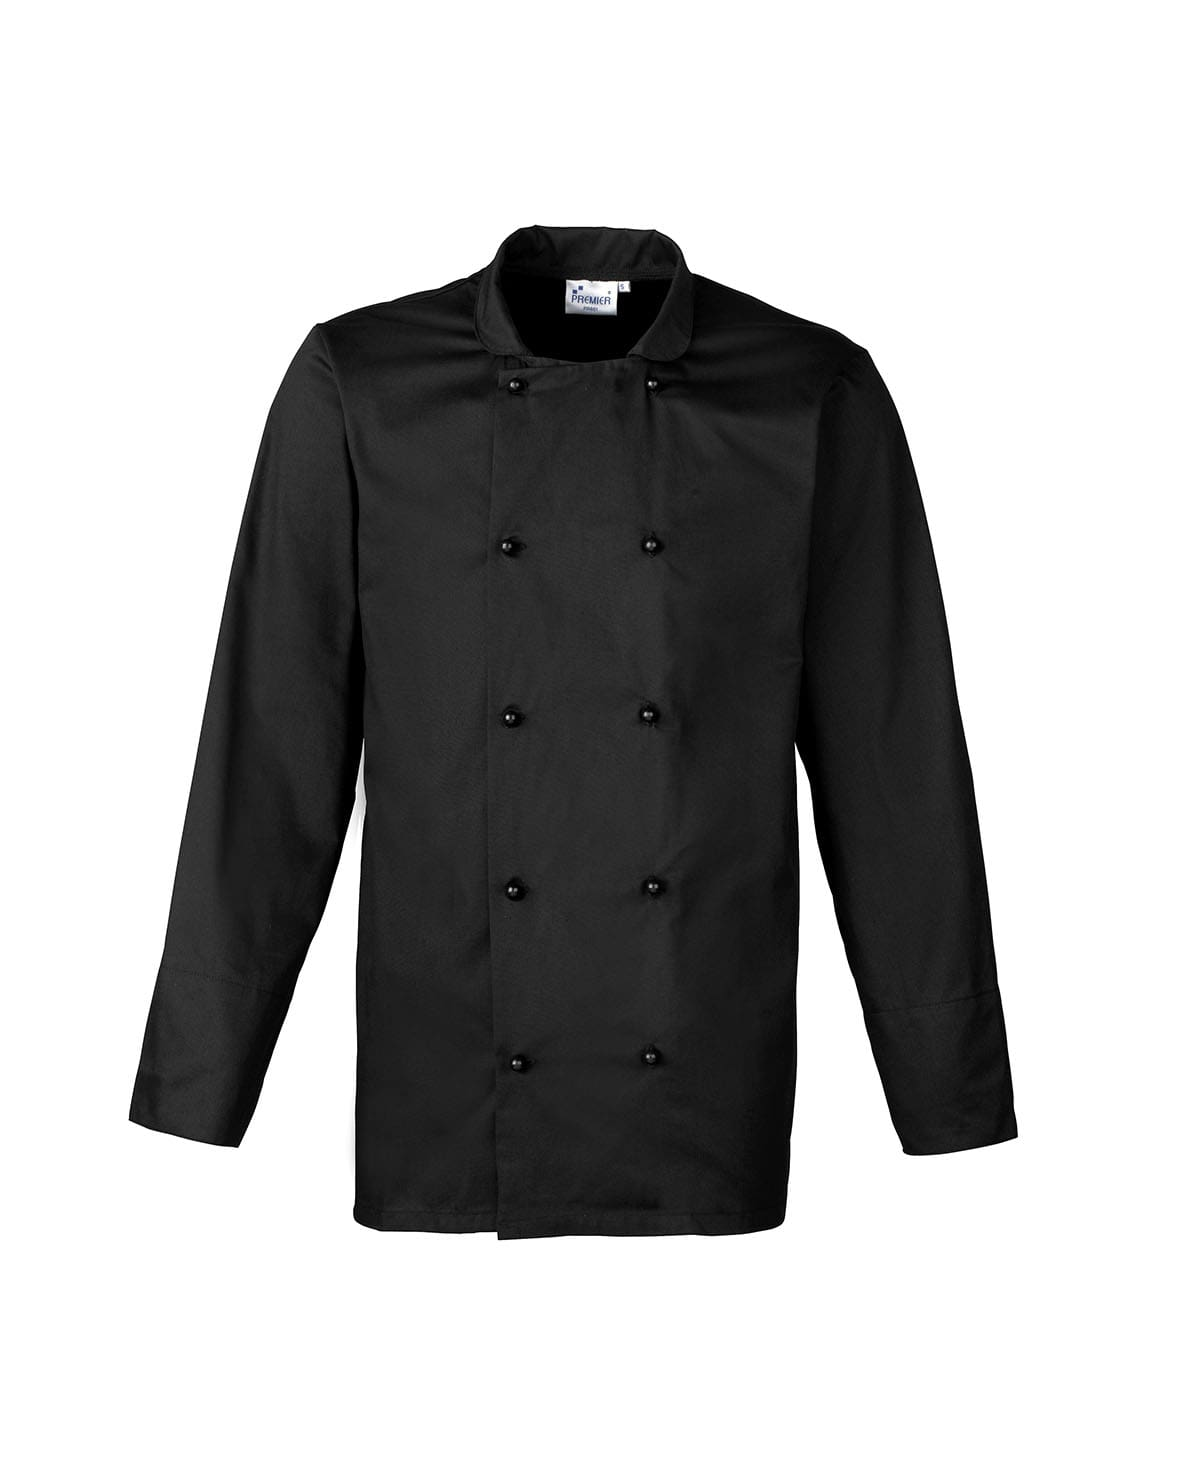 A Comprehensive Selection of Chef's Workwear Clothes and Accessories that can be Branded with Your Design or Logo